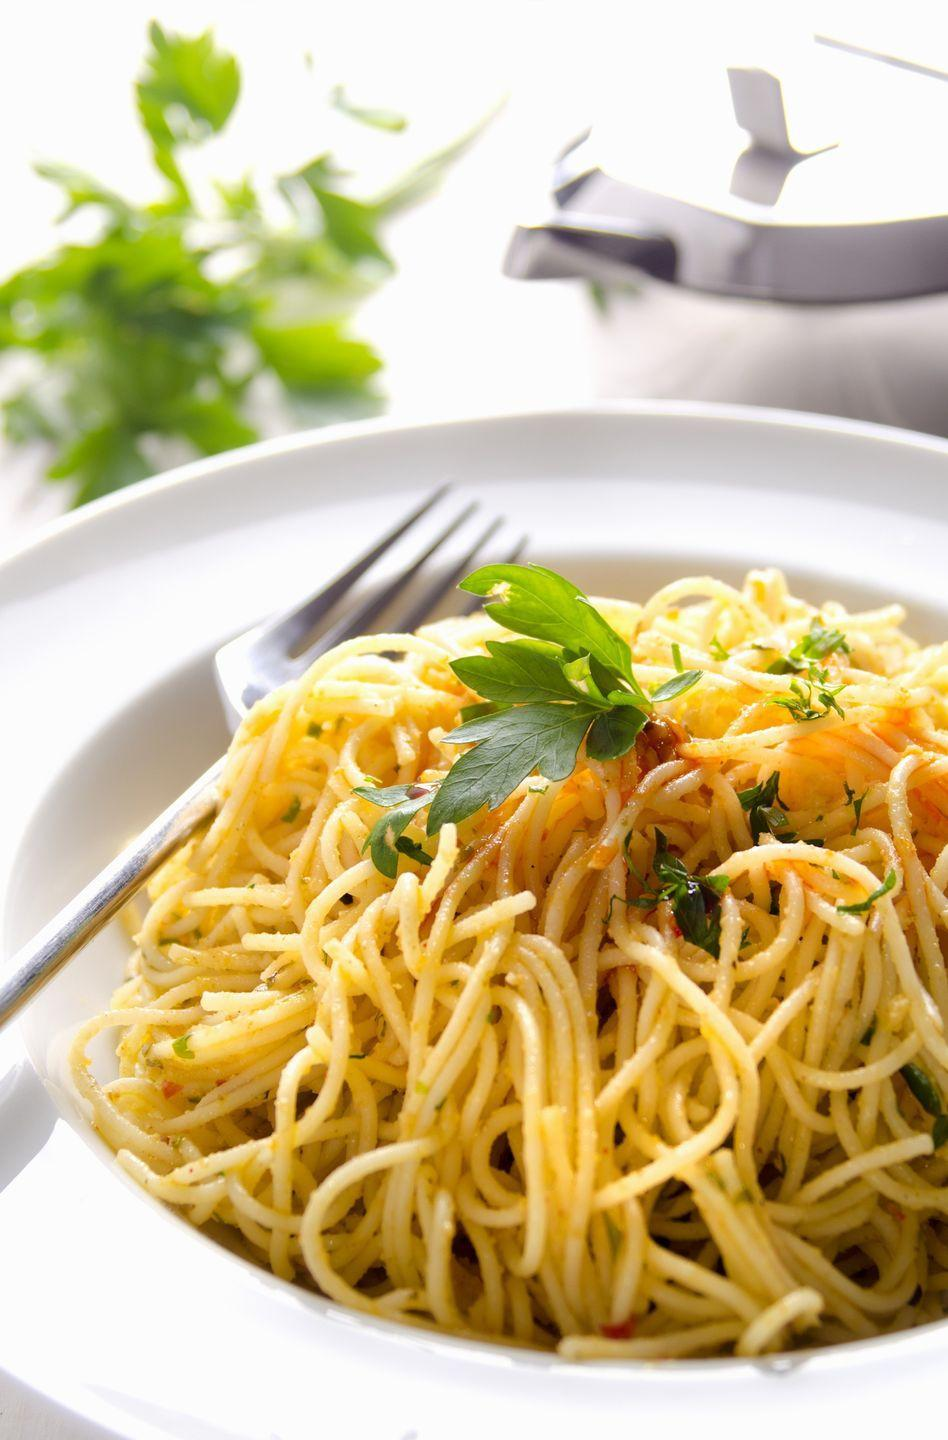 <p>Light sauces tend to work best with capellini pasta, as these won't weigh it down as much.</p>